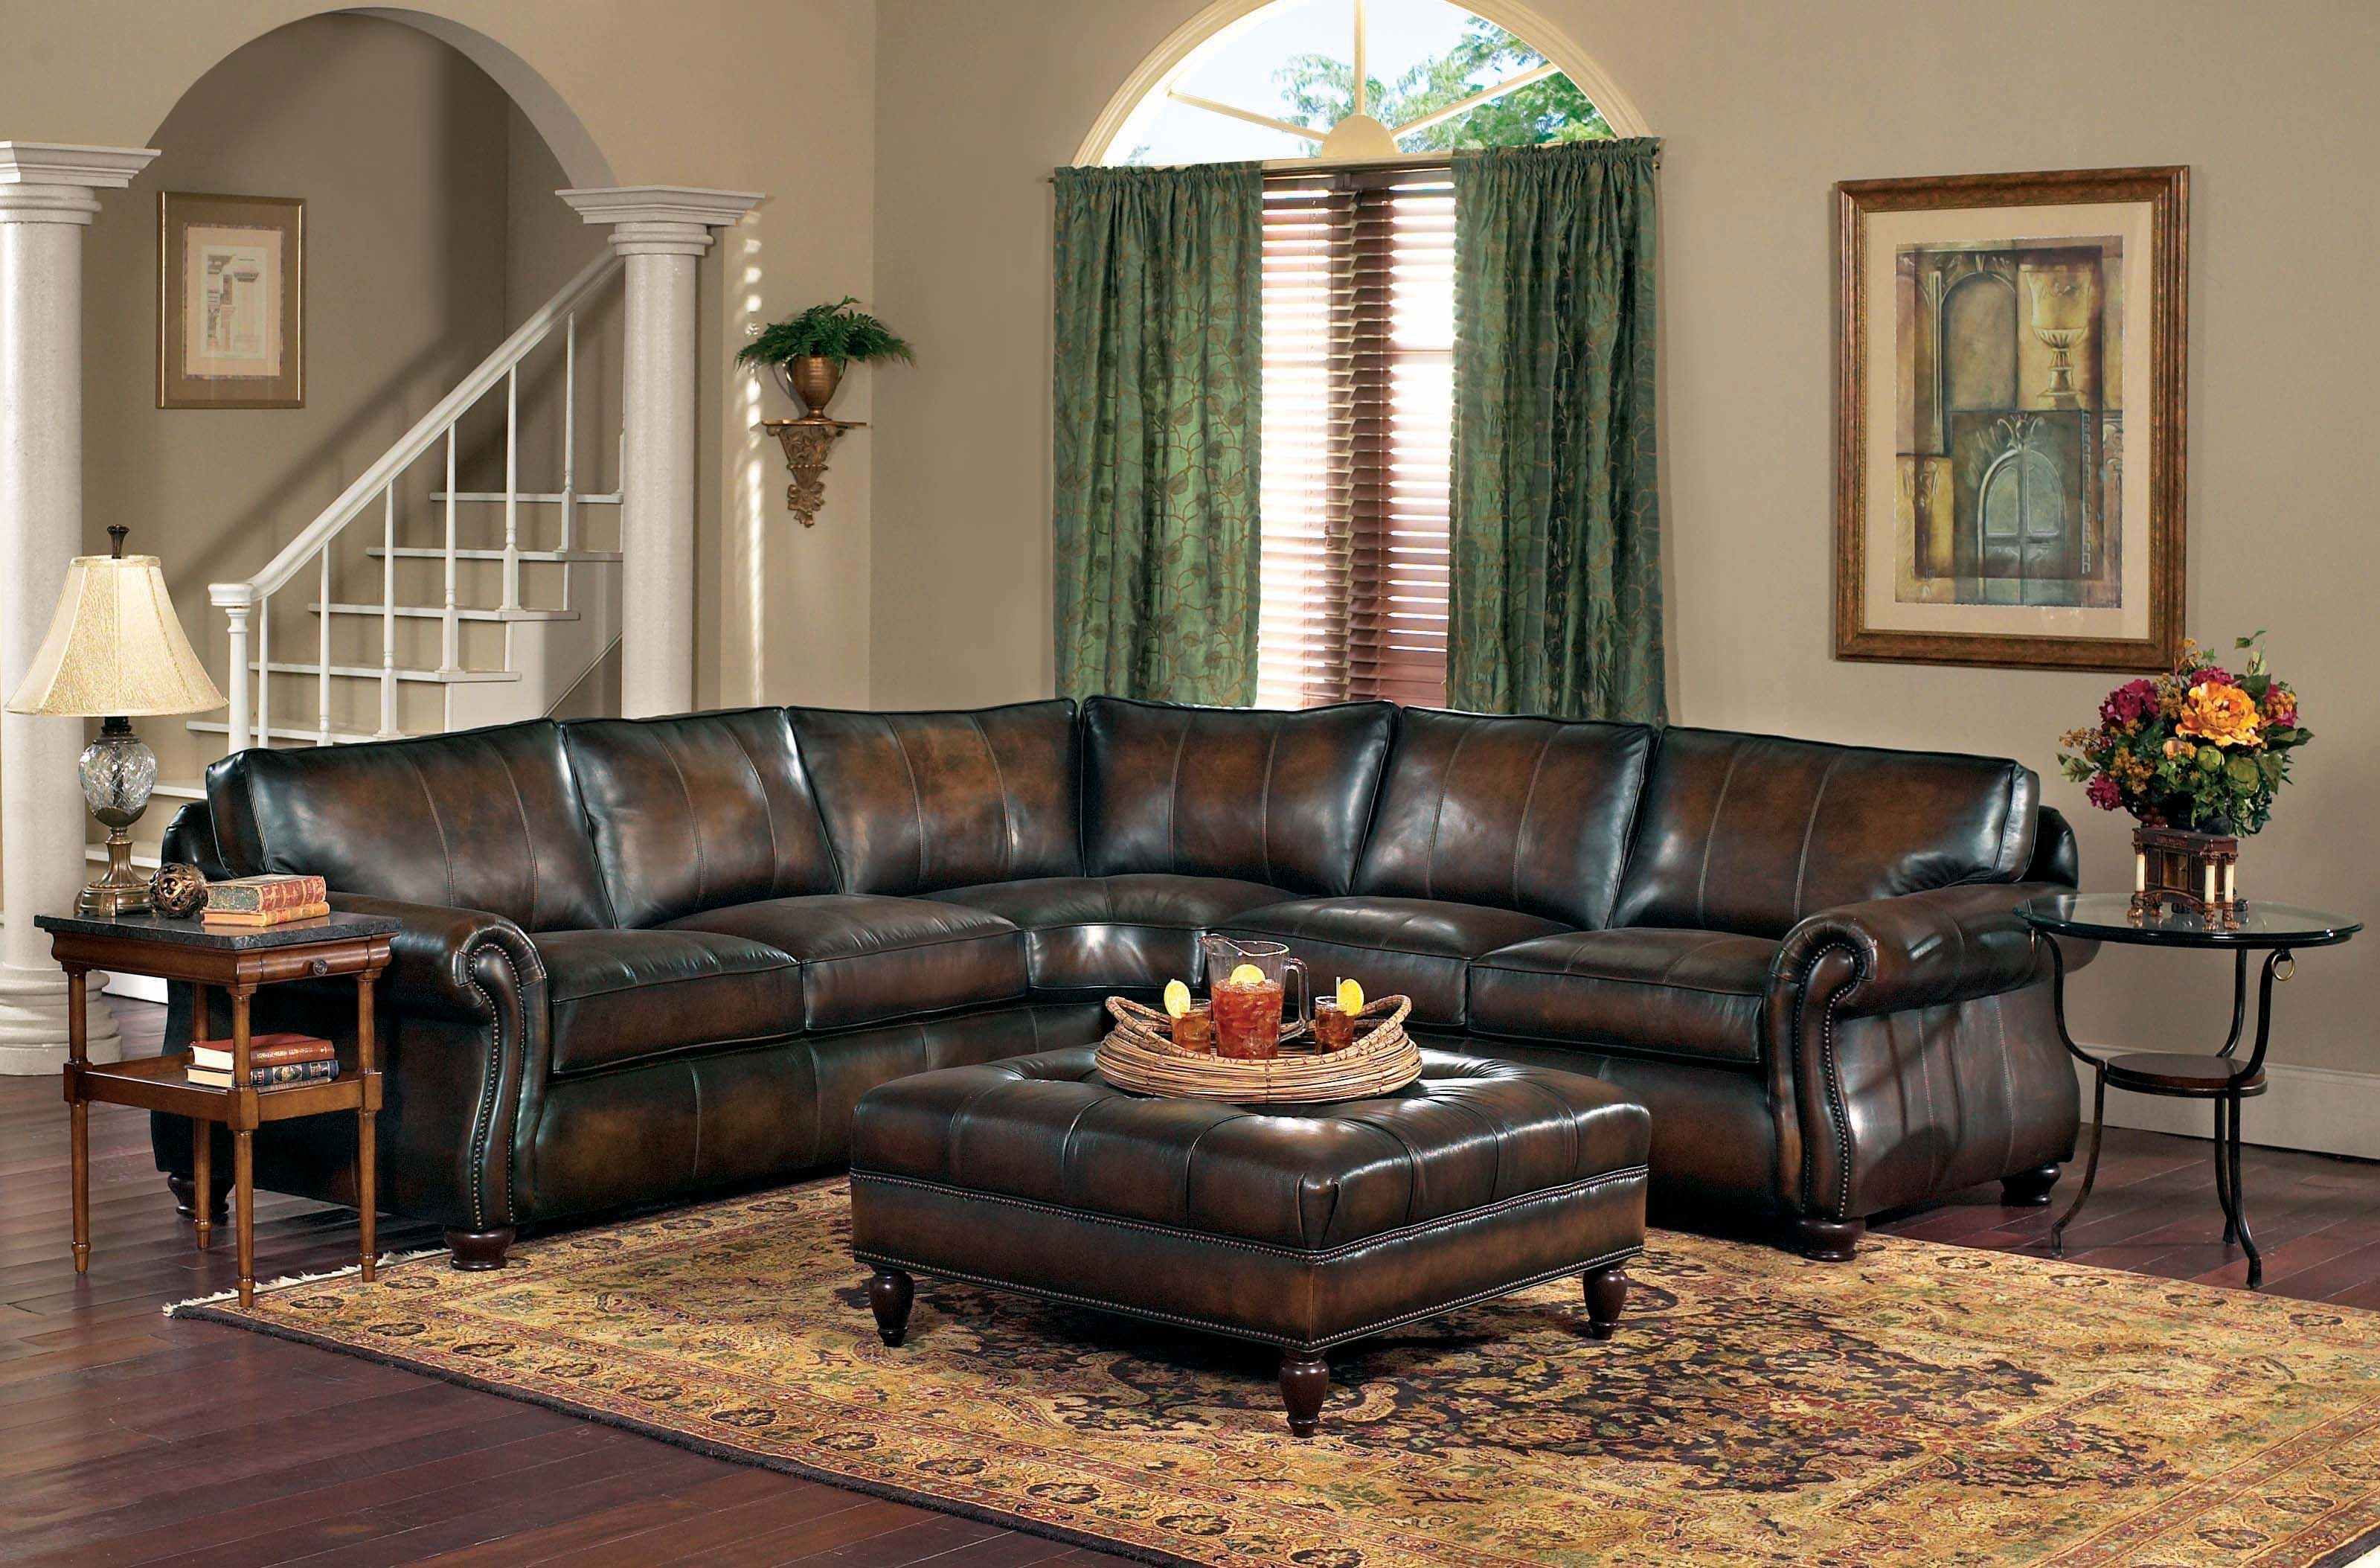 Van Gogh 2 Piece Leather Sectional KT:37184